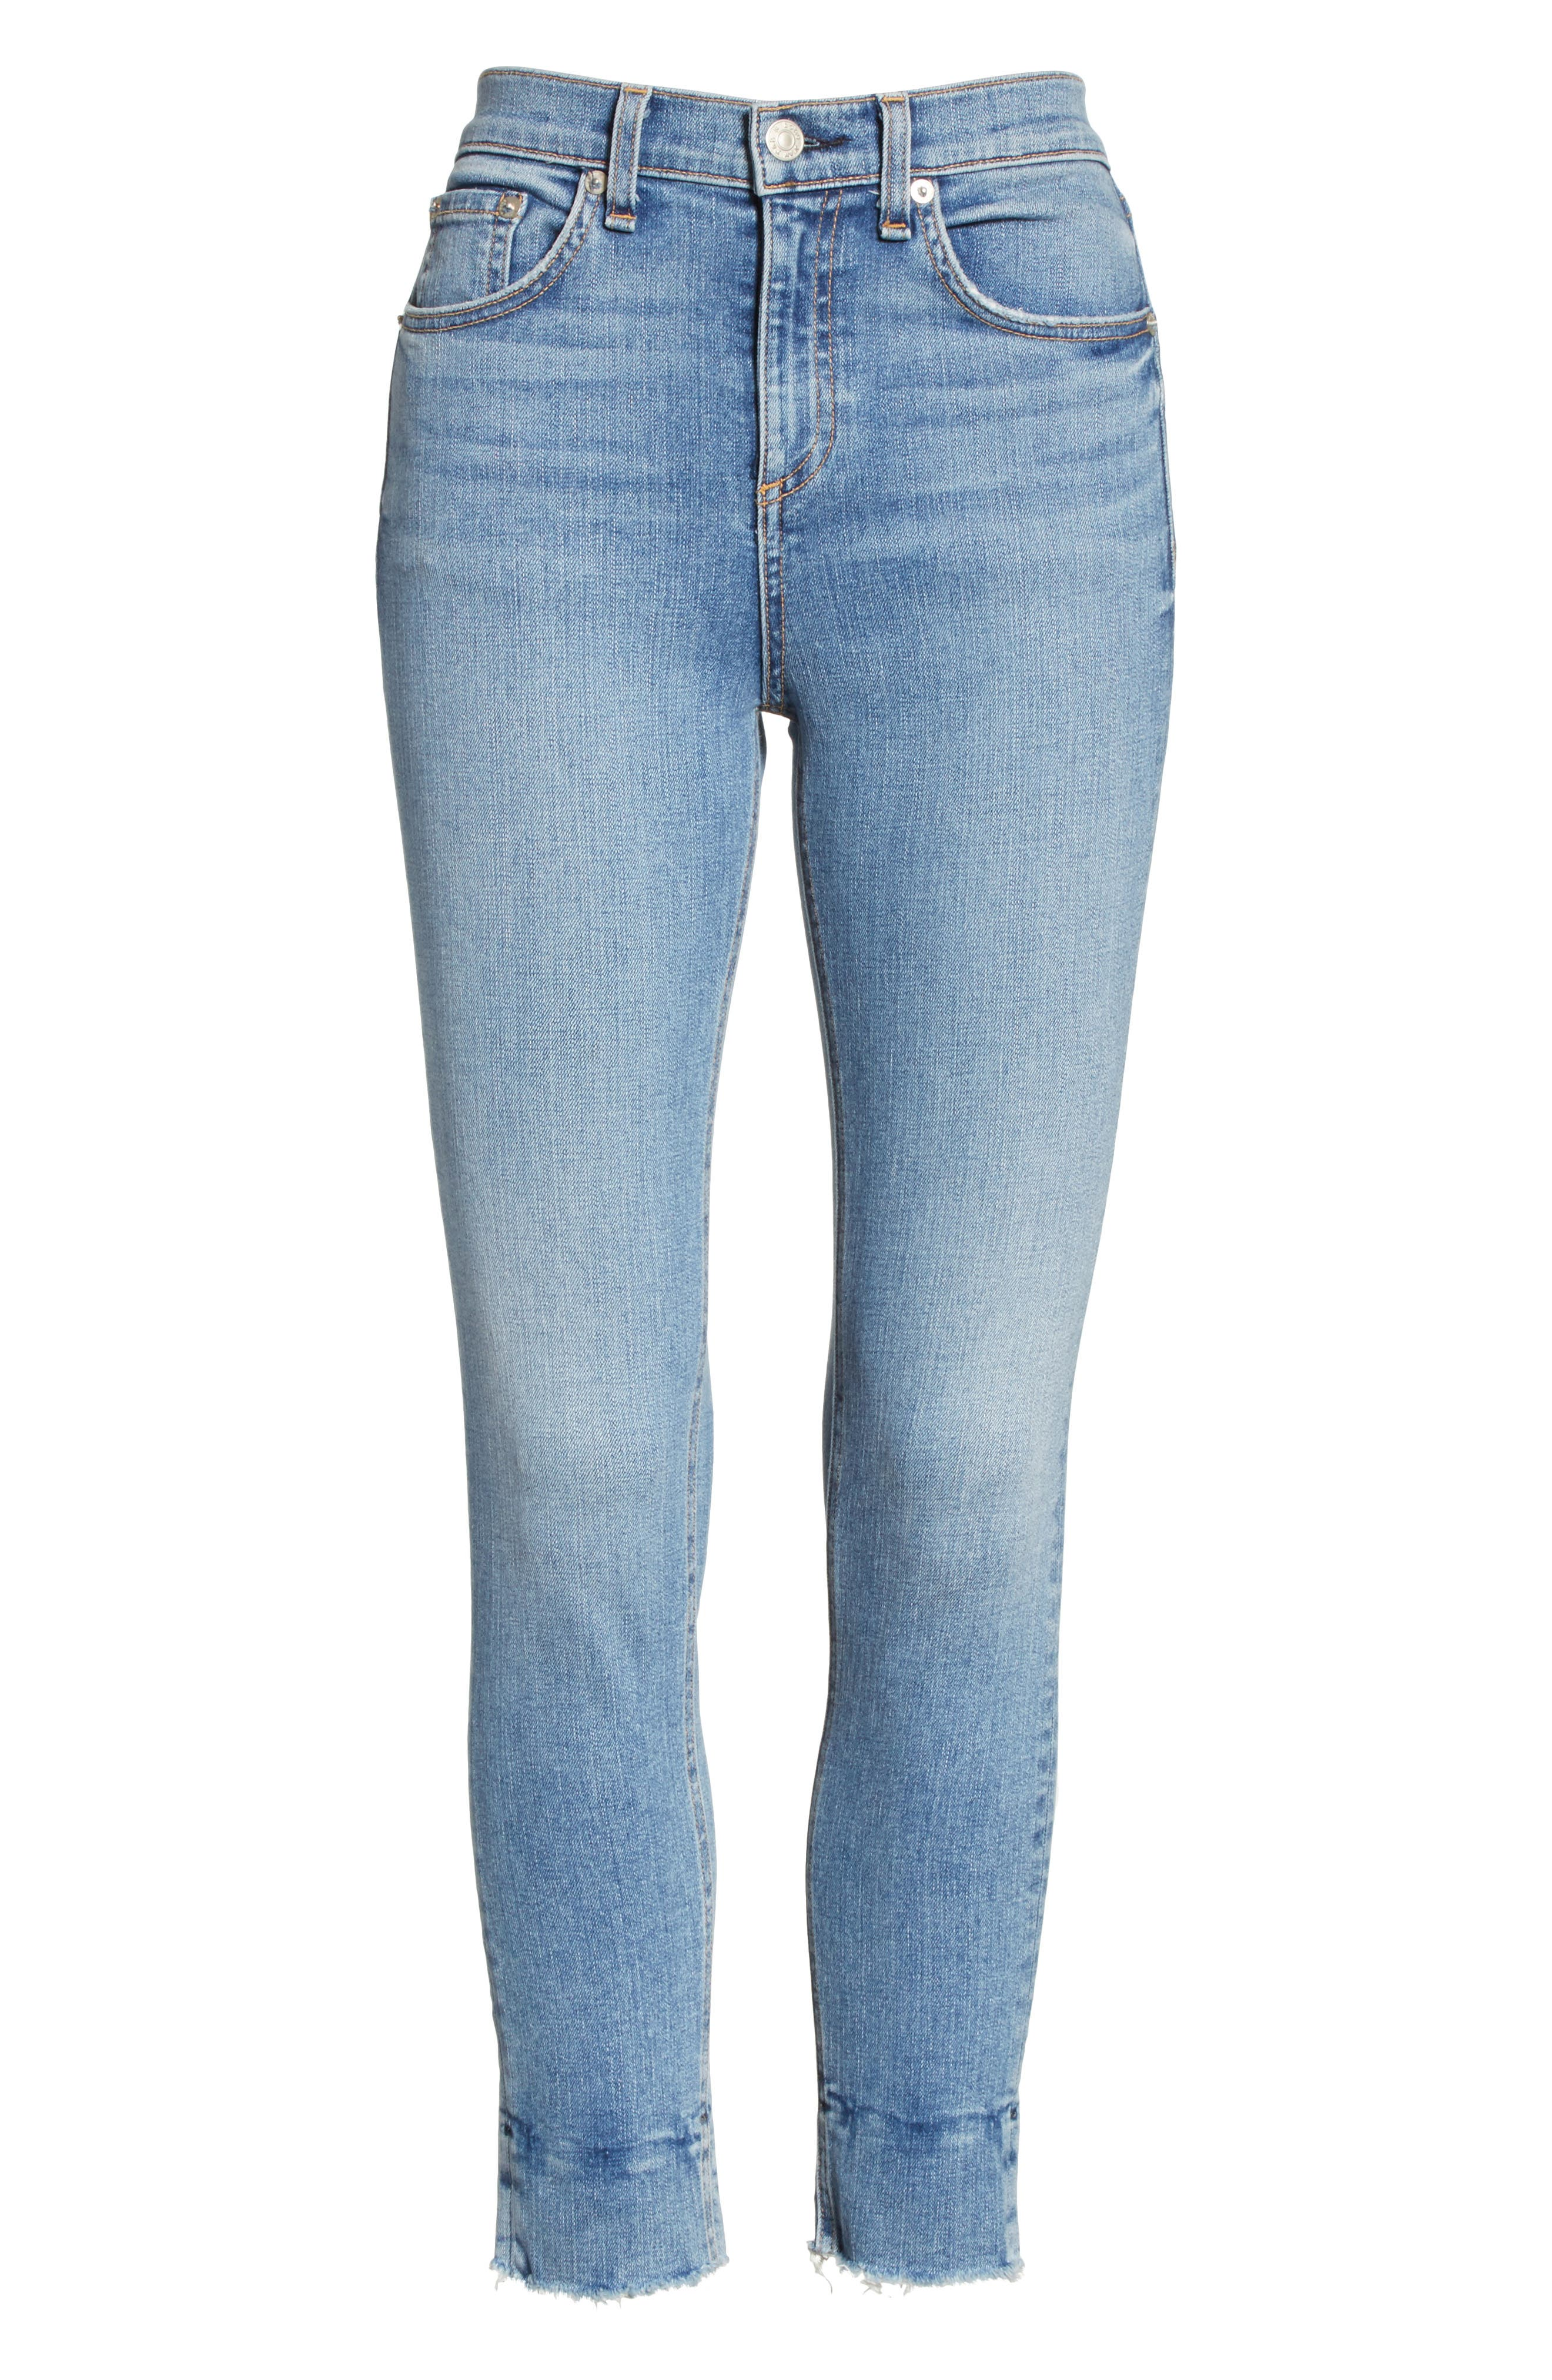 High Waist Ankle Skinny Jeans,                             Alternate thumbnail 7, color,                             Levee